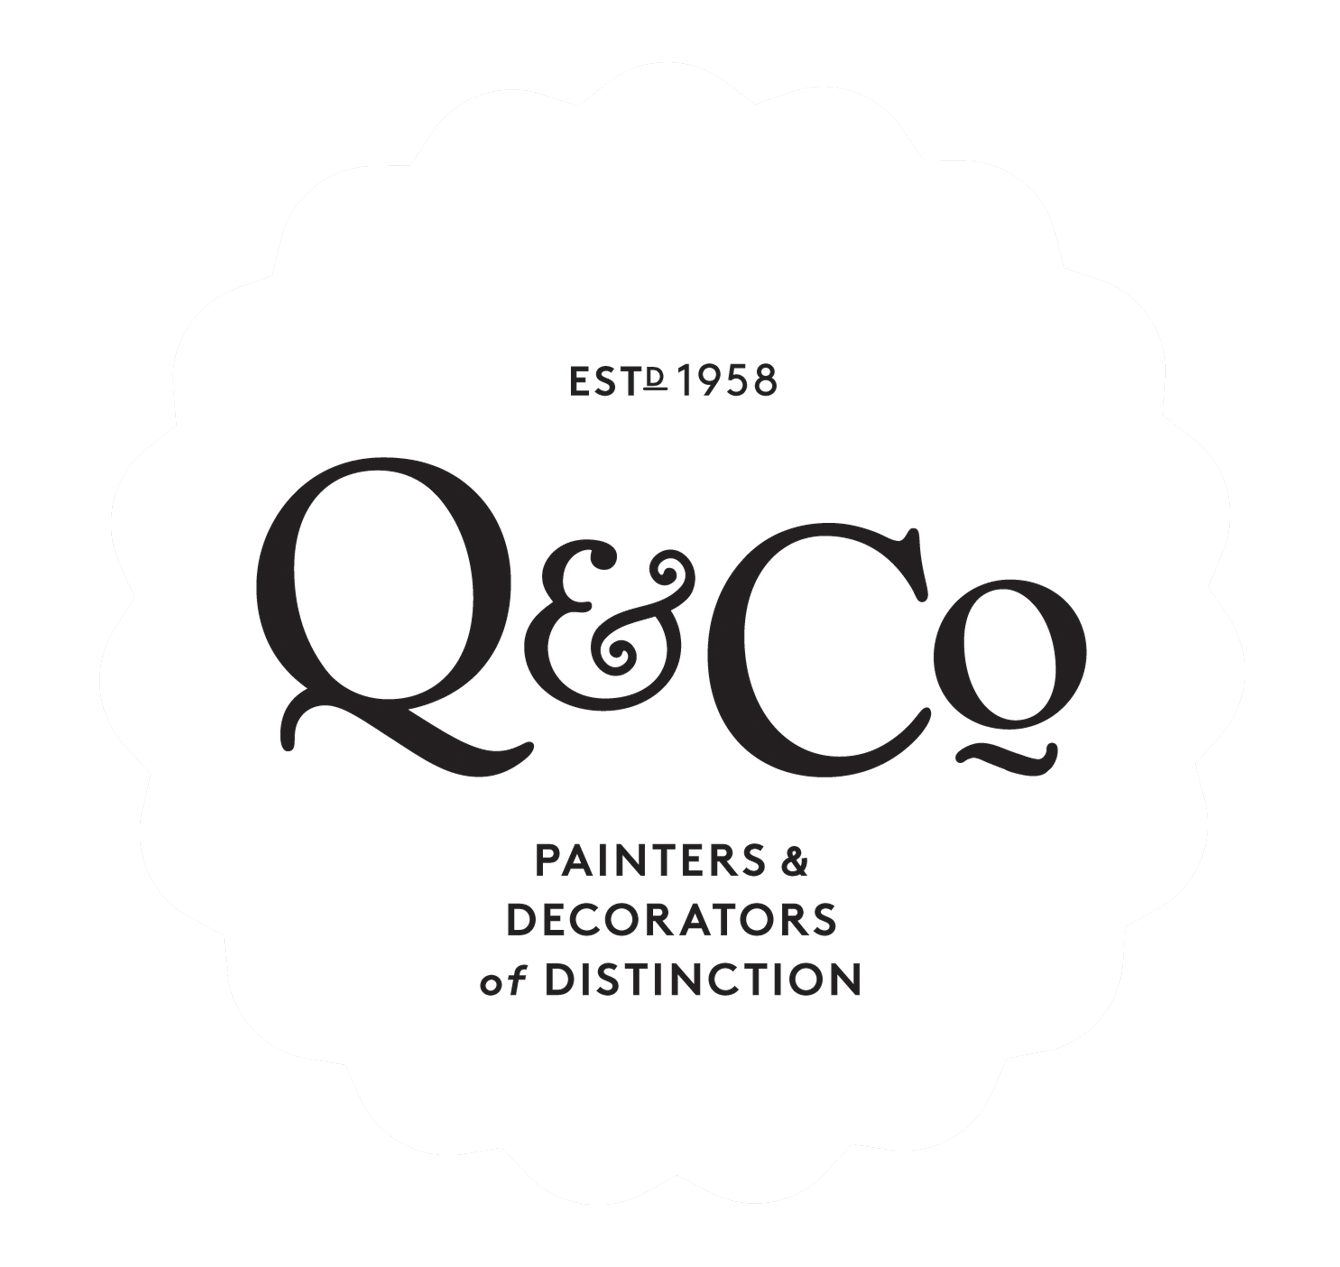 Cover image: Q&Co; (2013)